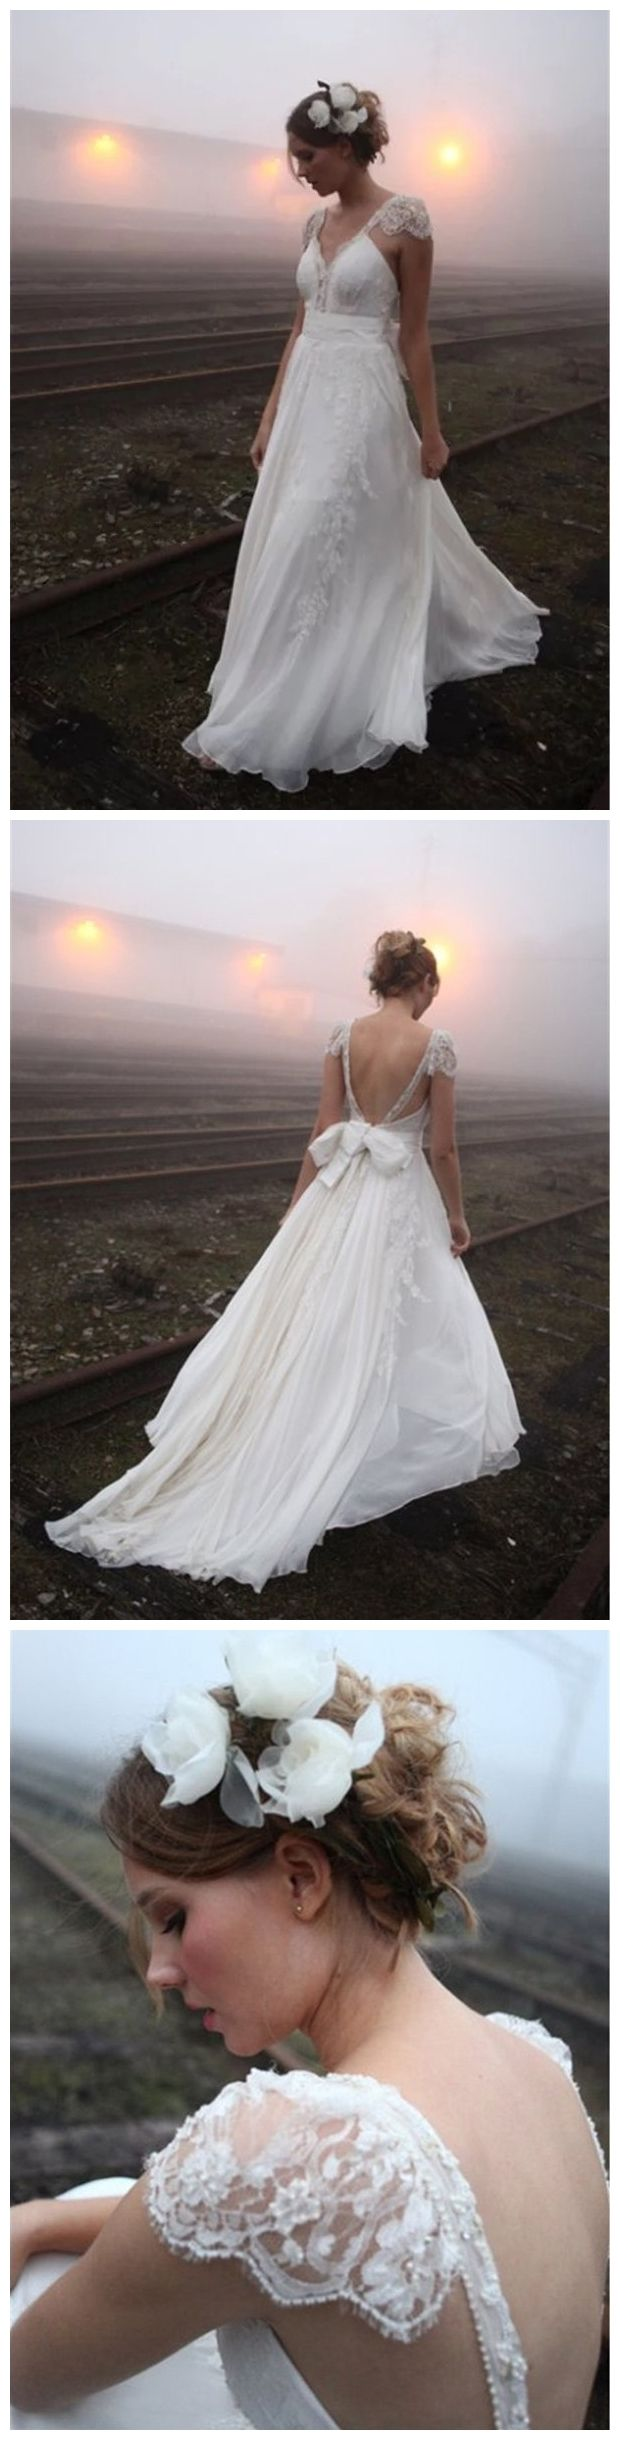 Cap sleeve country wedding dresses backless ivory beach wedding